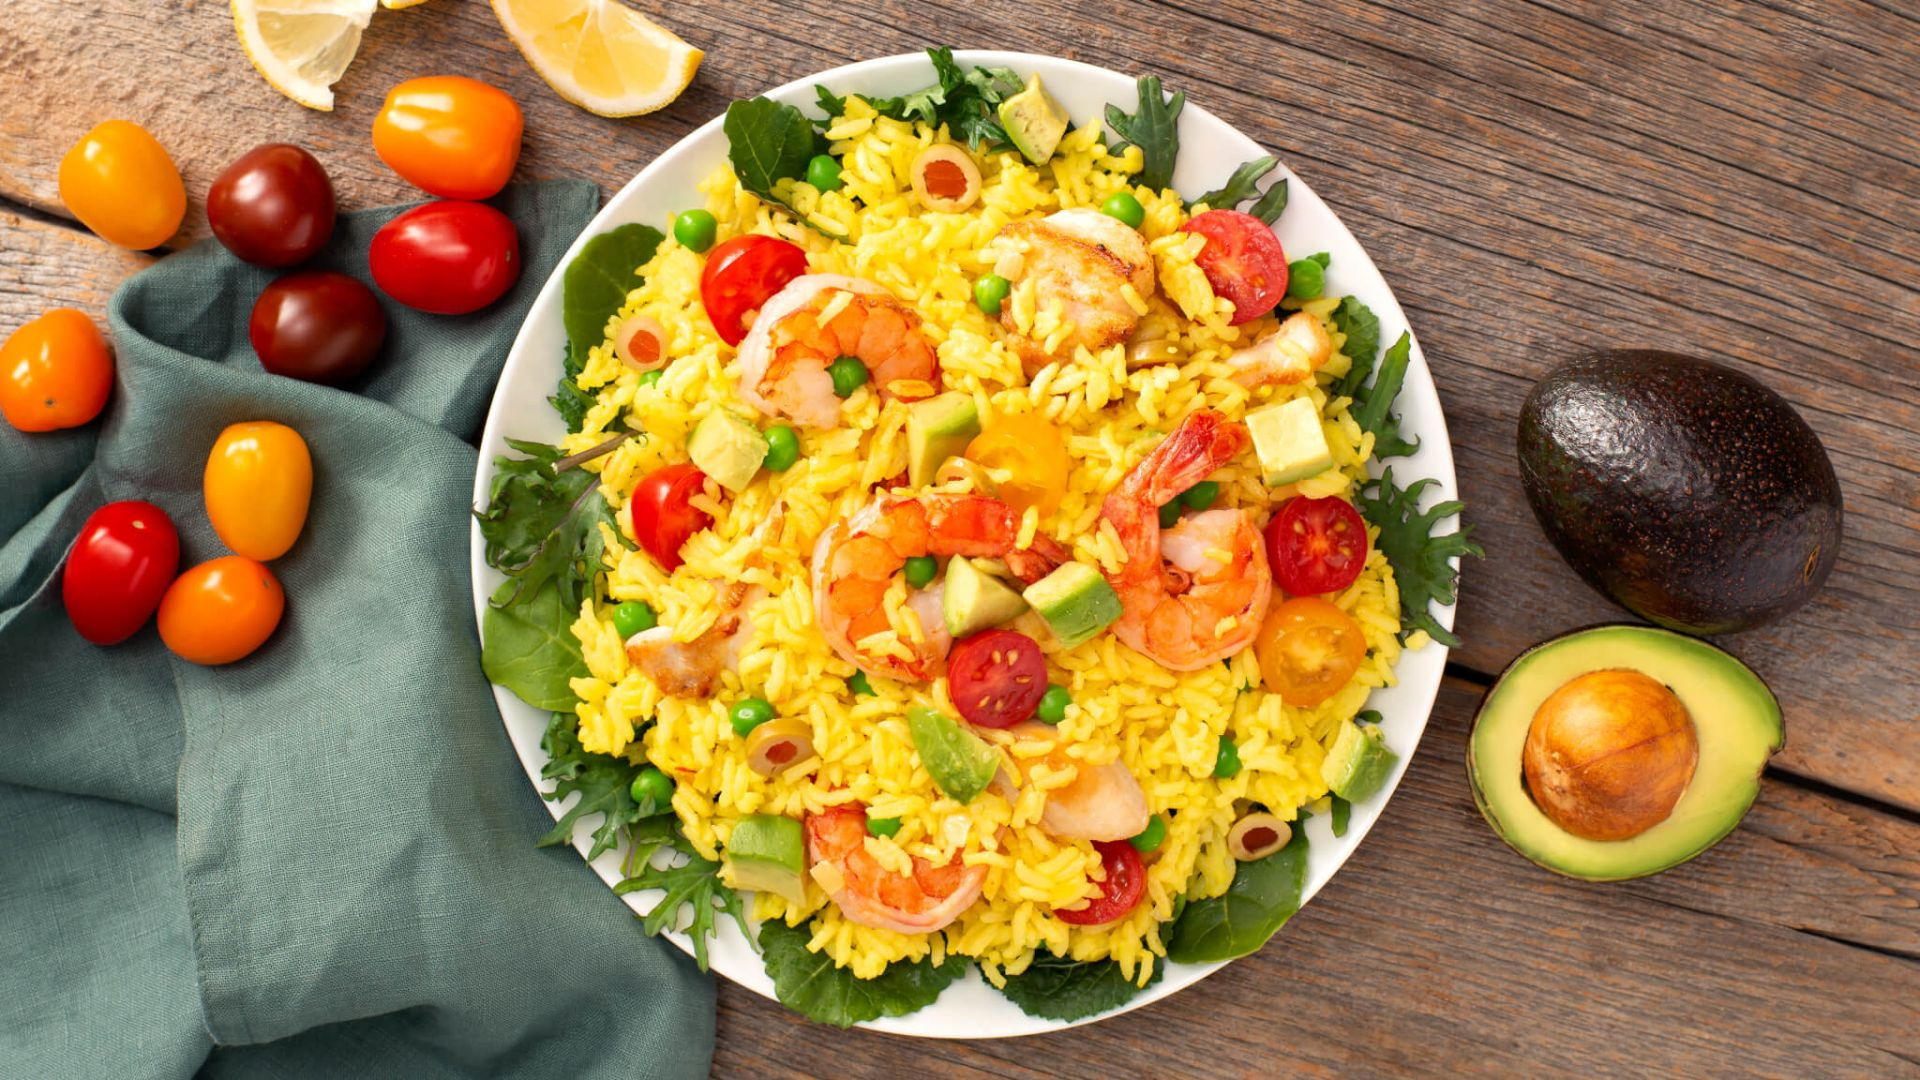 Paella Salad With Shrimp And Chicken Carolina Rice